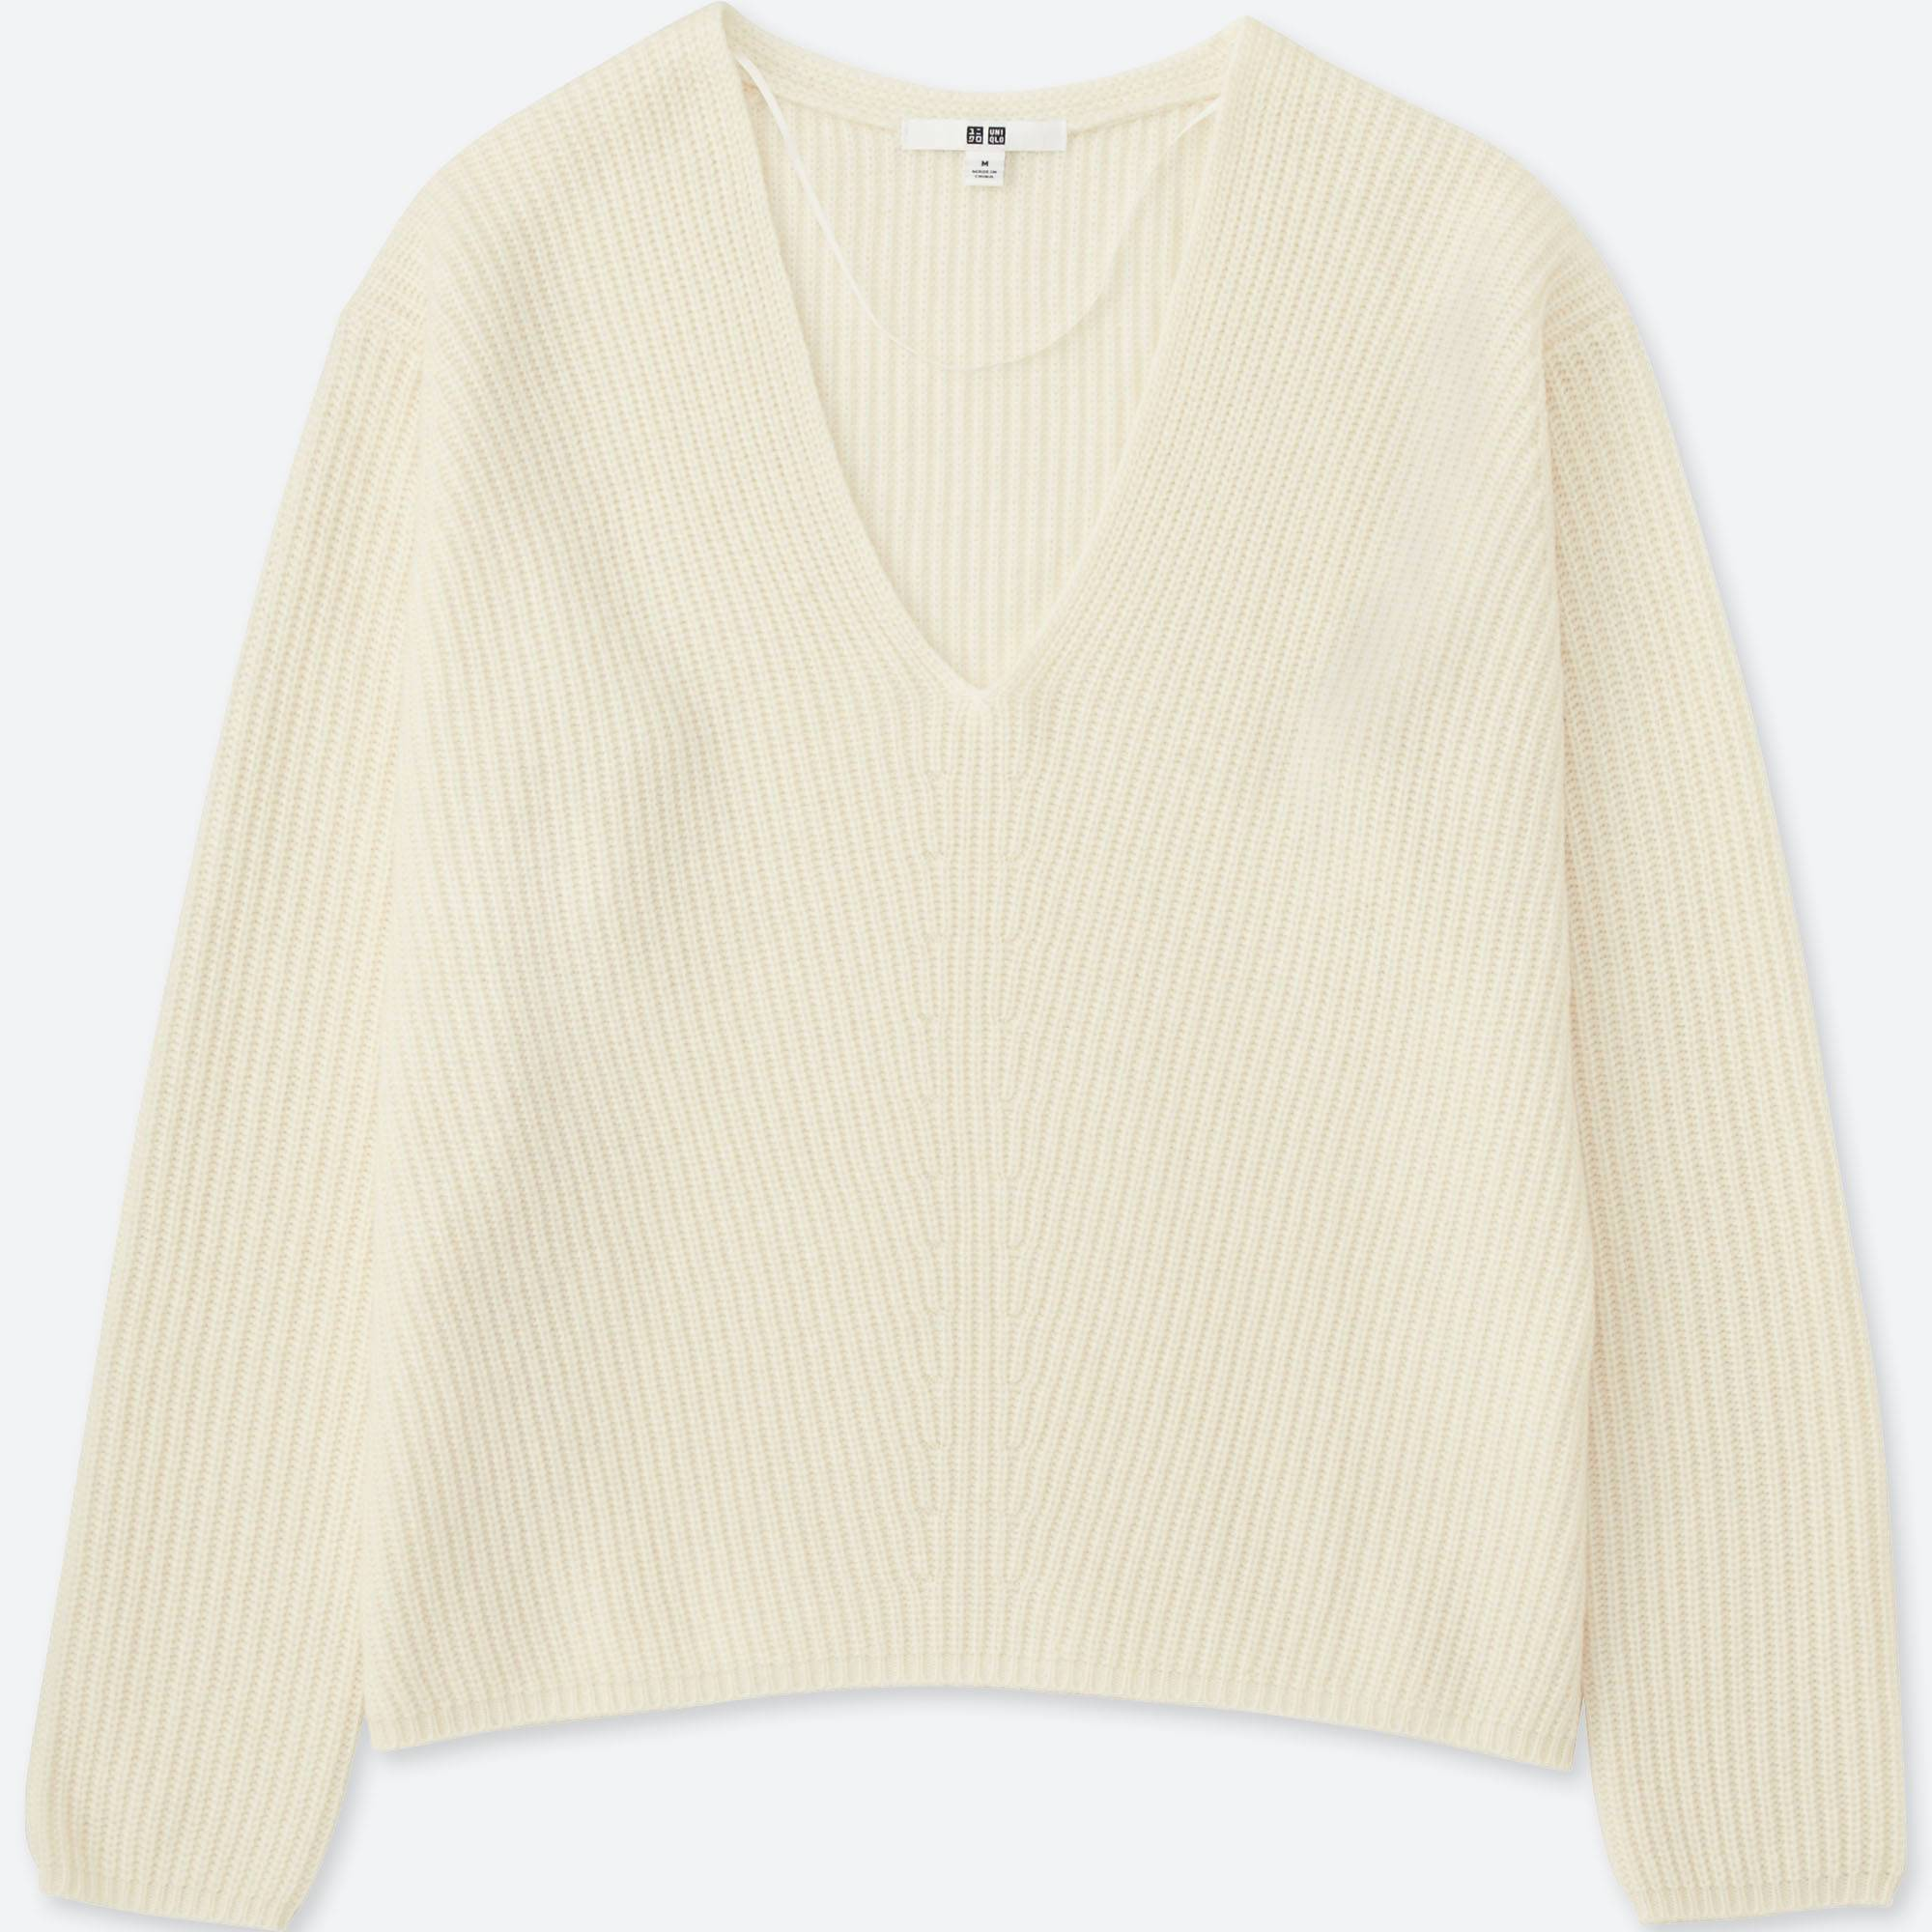 WOMEN CASHMERE BLEND V-NECK SWEATER | UNIQLO US